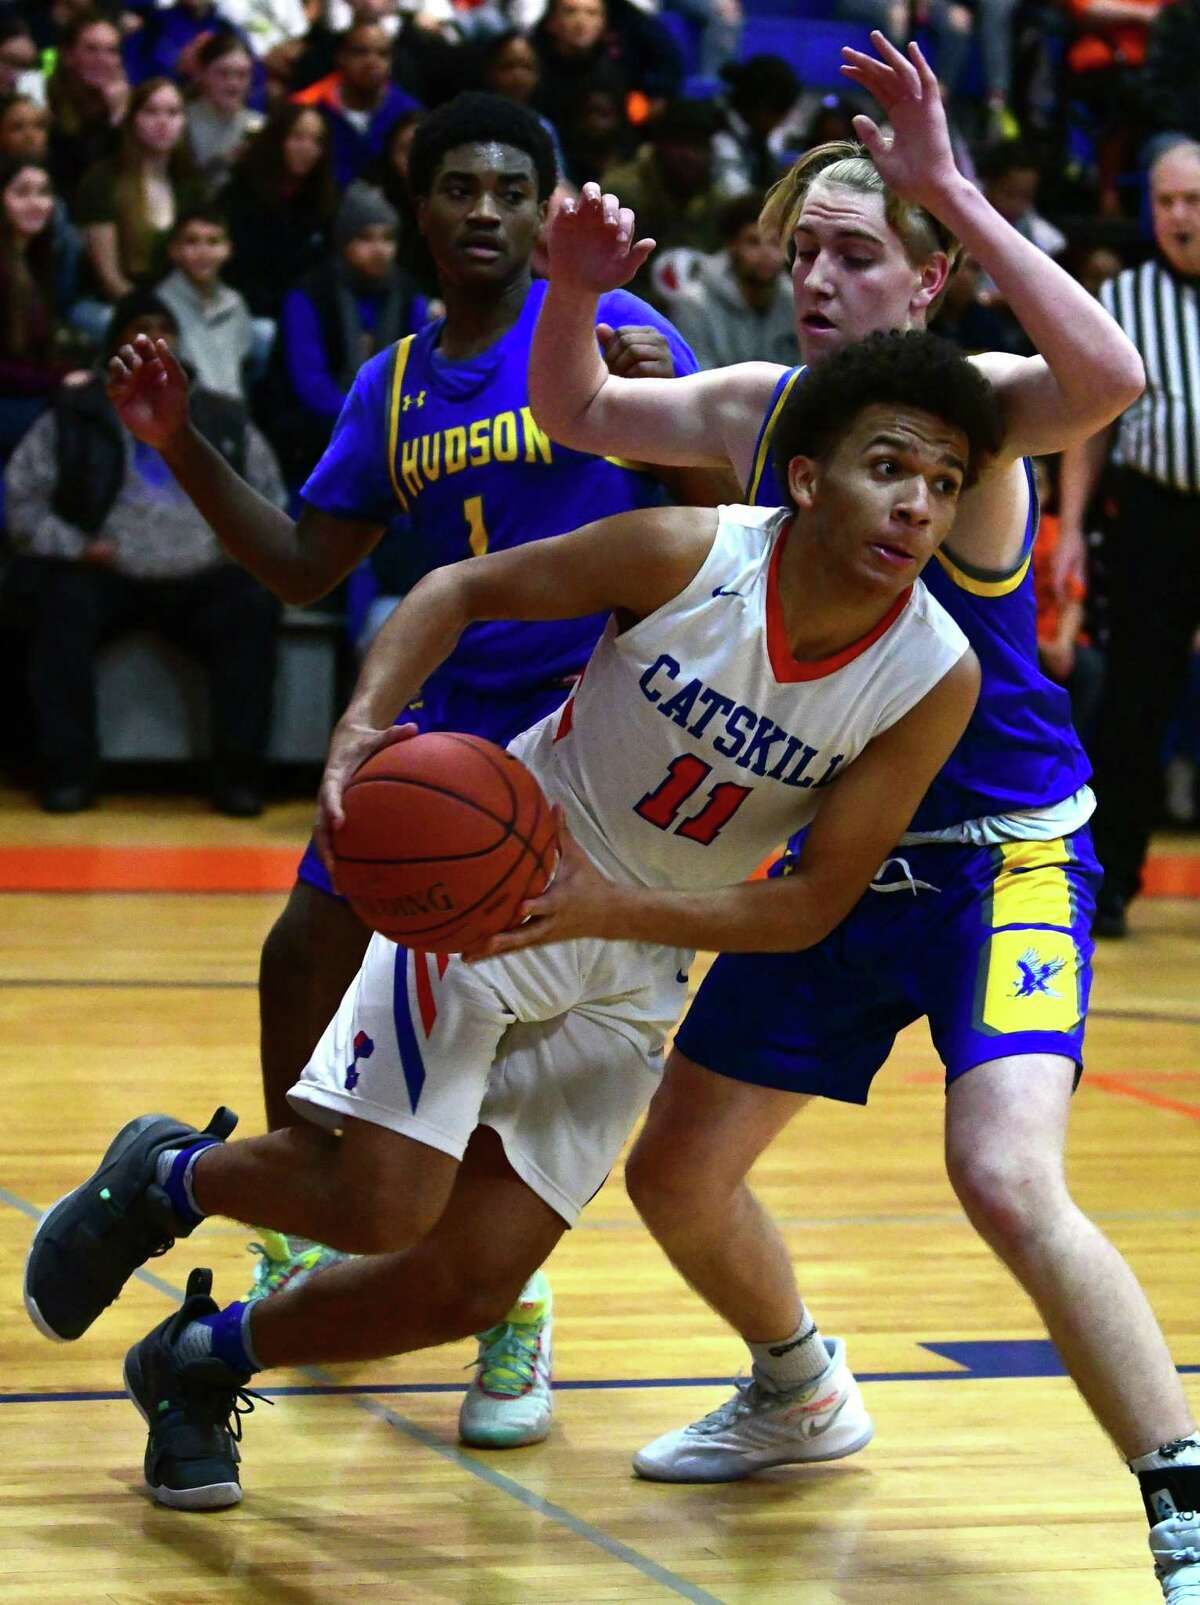 Catskill's Leviticus Johnson drives to the basket against Hudson during a basketball game on Tuesday, Dec. 10, 2019 in Catskill, N.Y. (Lori Van Buren/Times Union)